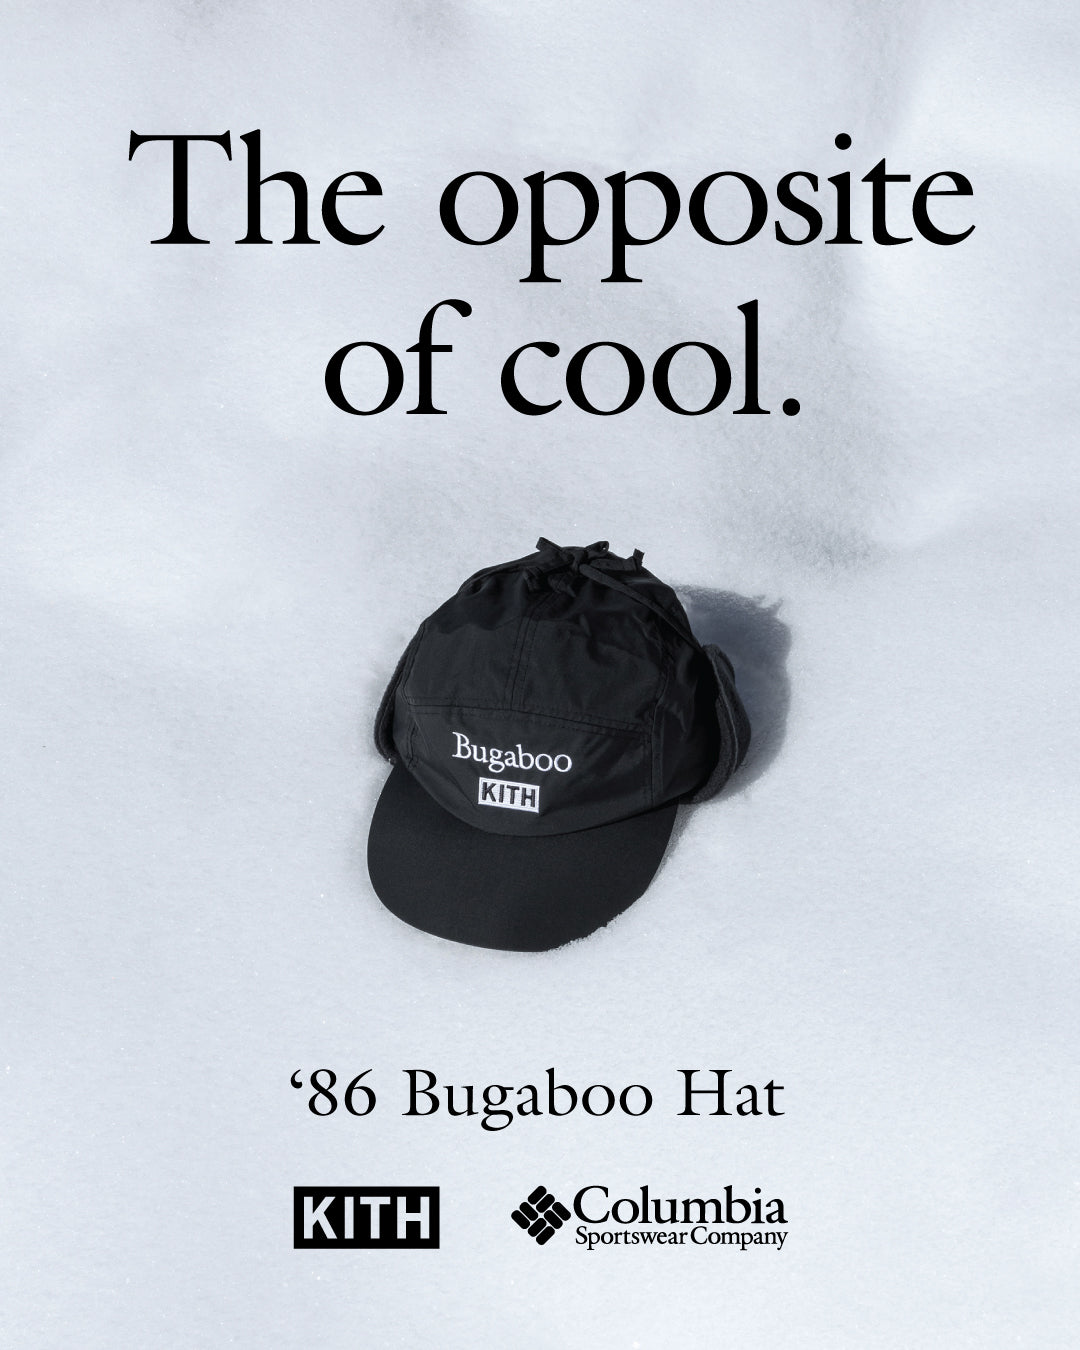 bc3f05fba3d2e Kith x Columbia Sportswear Bugaboo Collection - 90 s Ads Reinterpreted